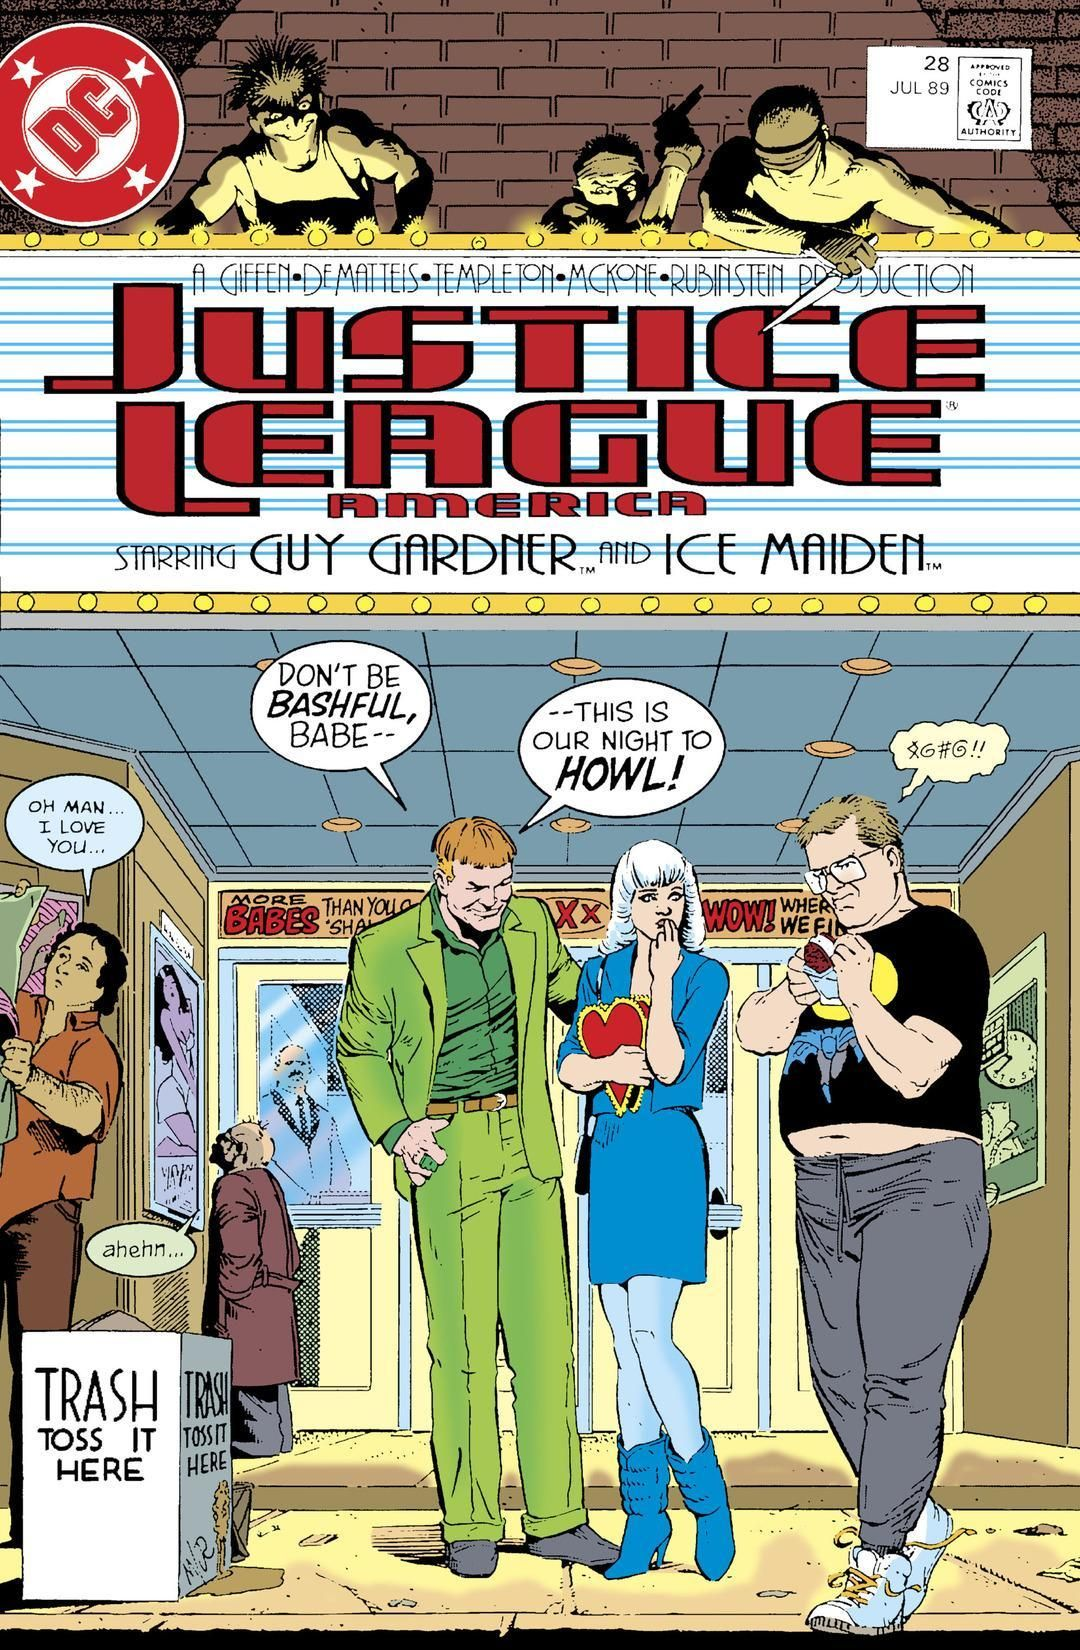 Justice League America #28 cover by Kevin Maguire & Joe Rubinstein